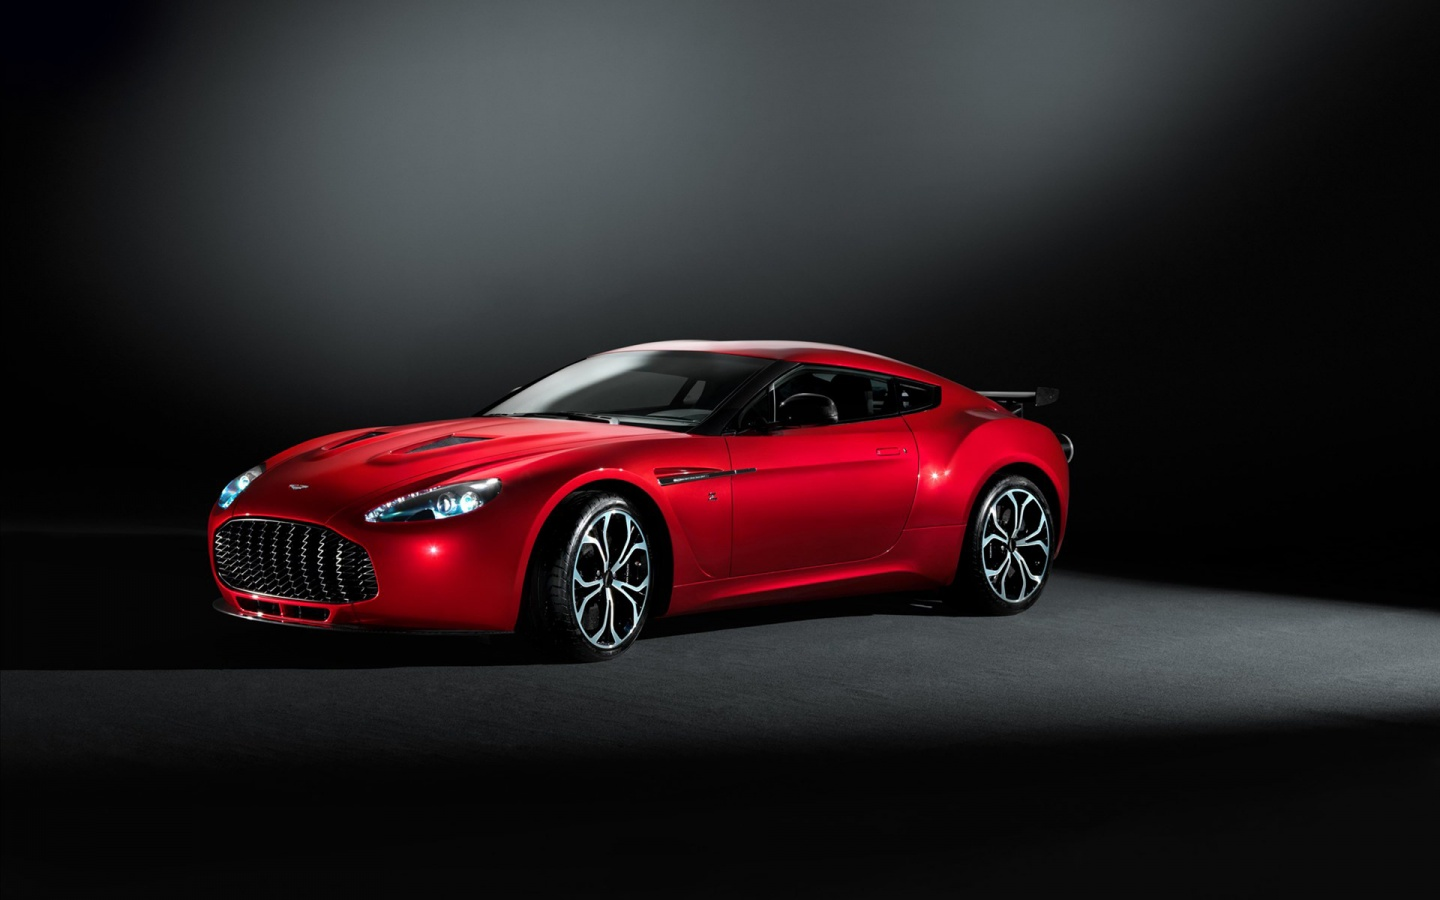 2013 Aston Martin V12 Zagato Wallpapers HD Wallpapers 1440x900